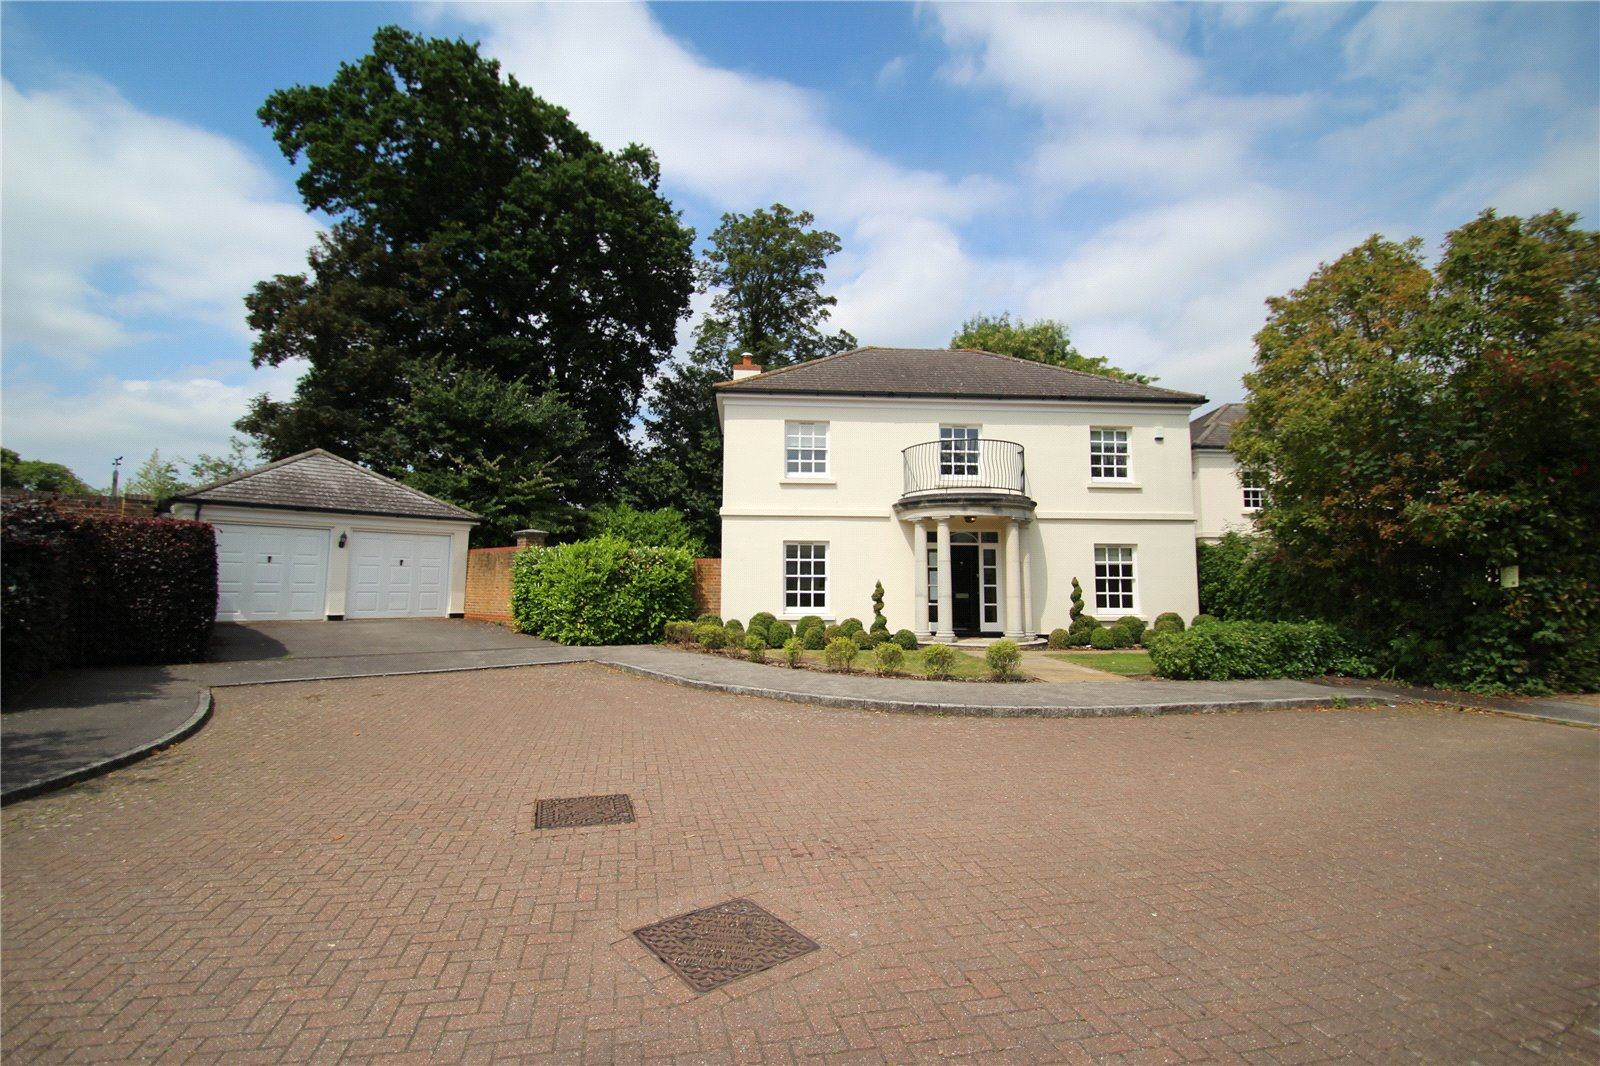 Clare Wood Drive, East Malling